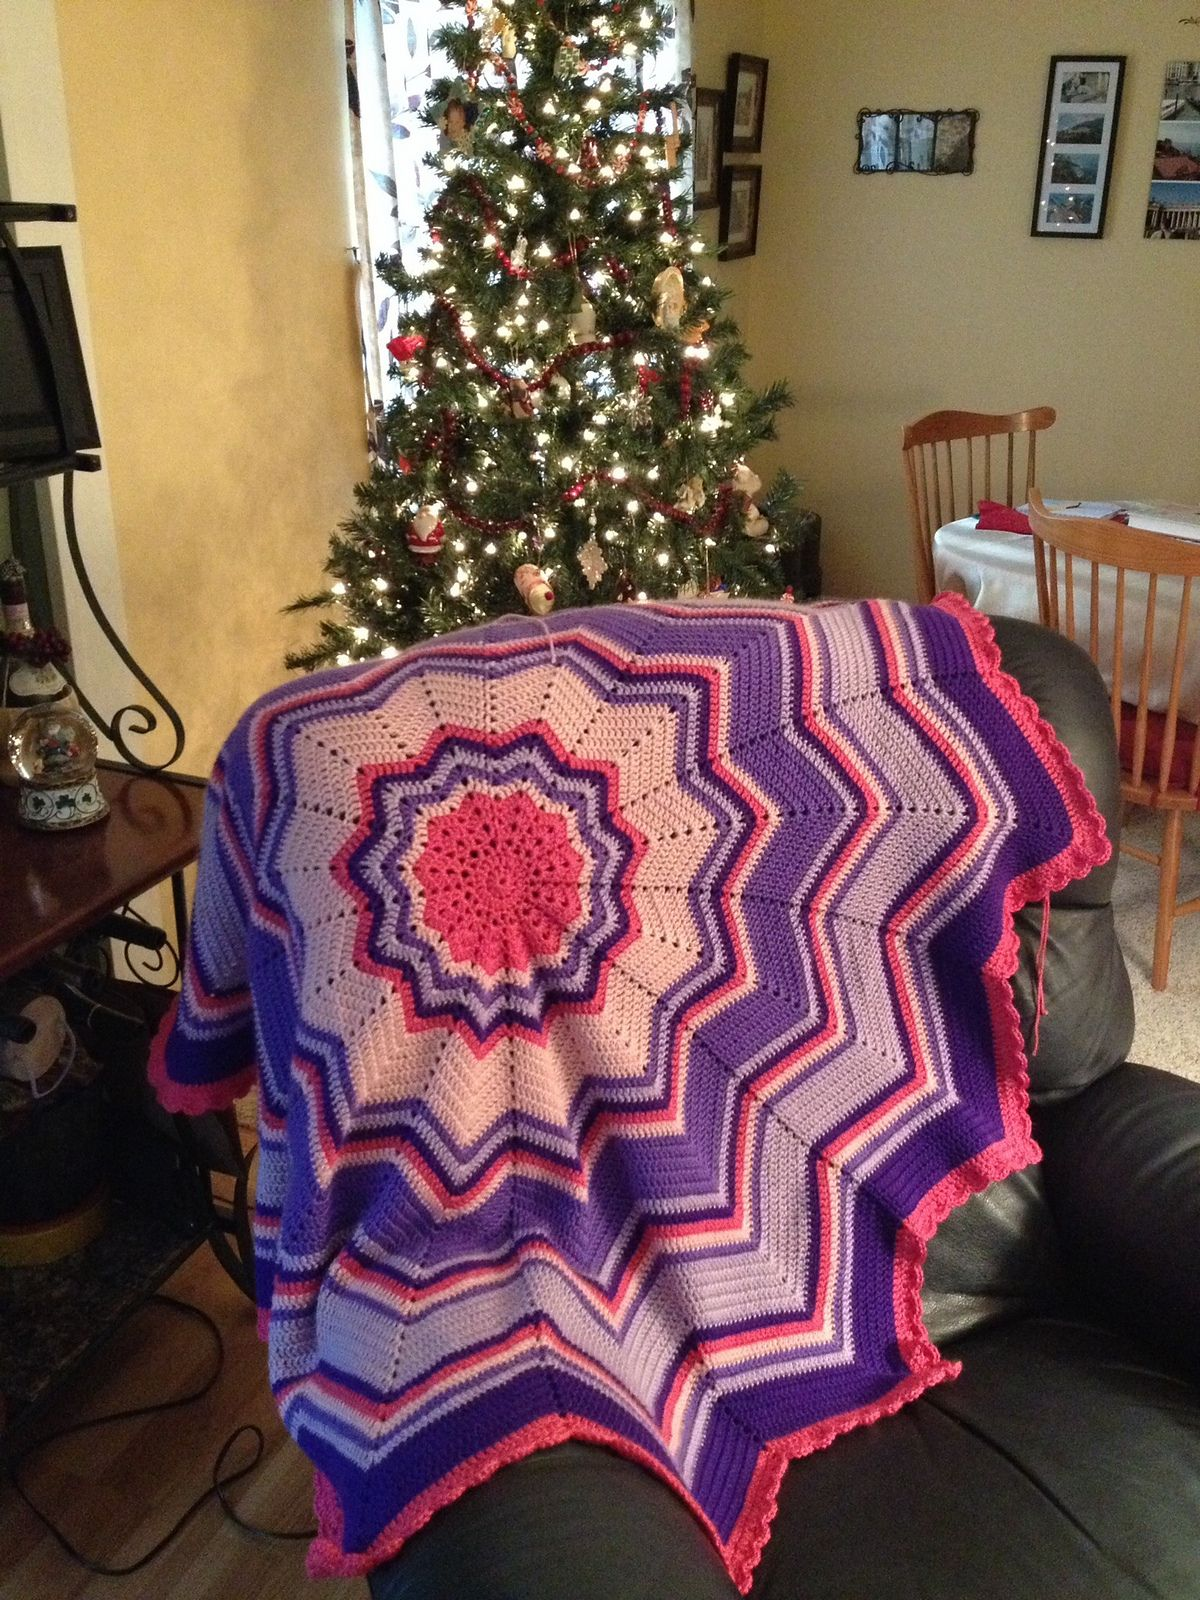 Ravelry: Rainbow Ripple Baby Blanket by Celeste Young | Ganchillo ...